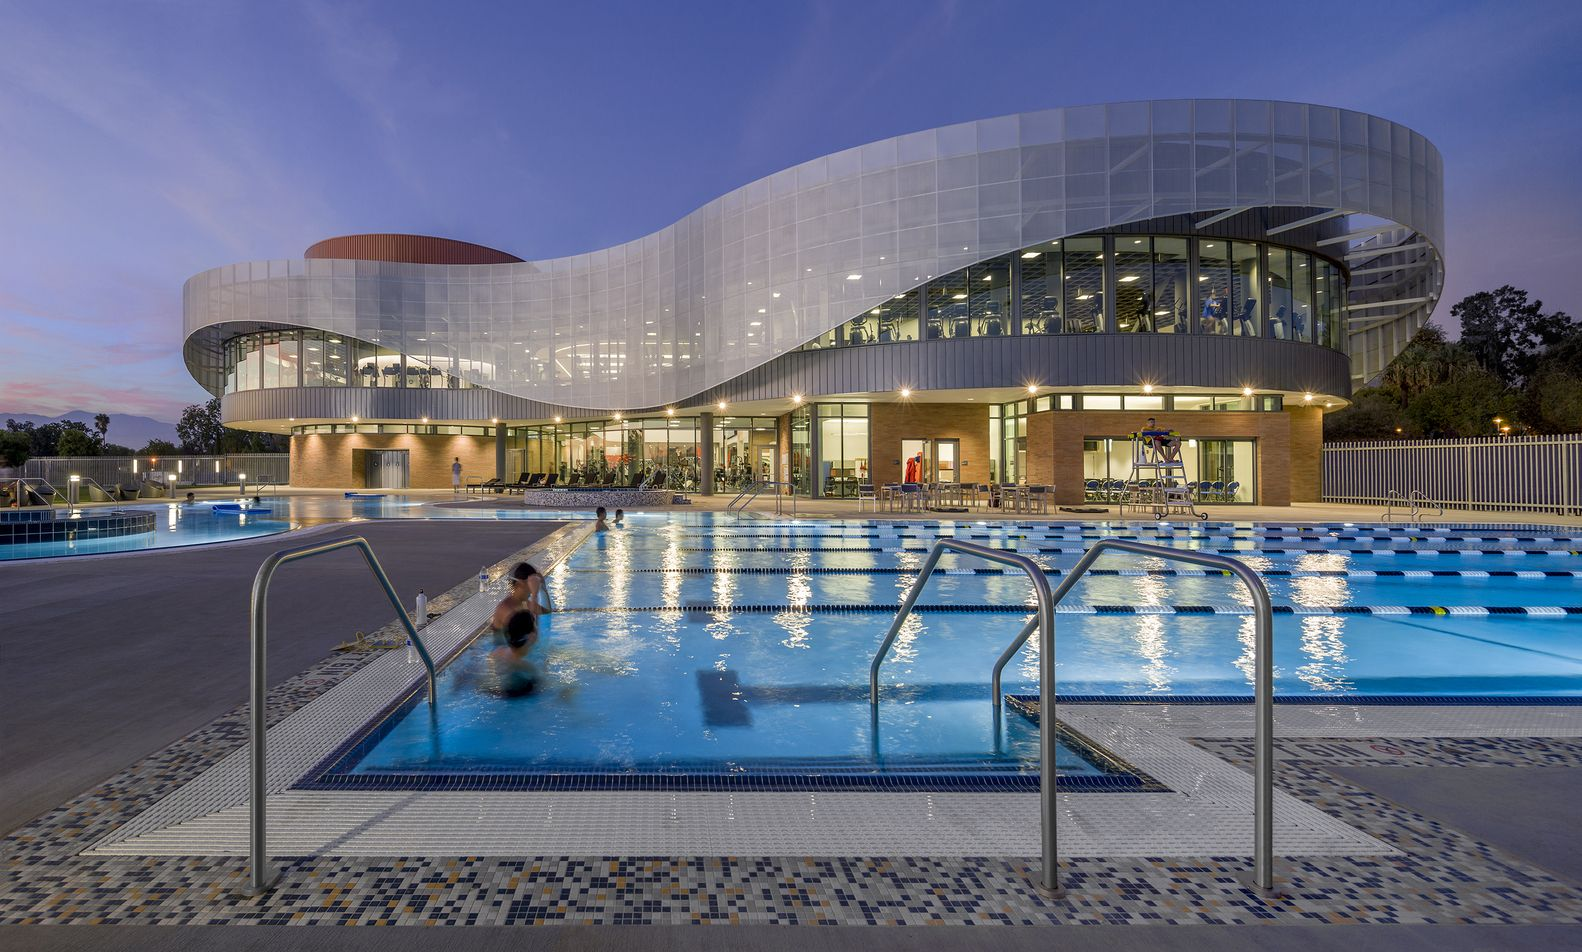 Gallery of UC Riverside Student Recreation Center